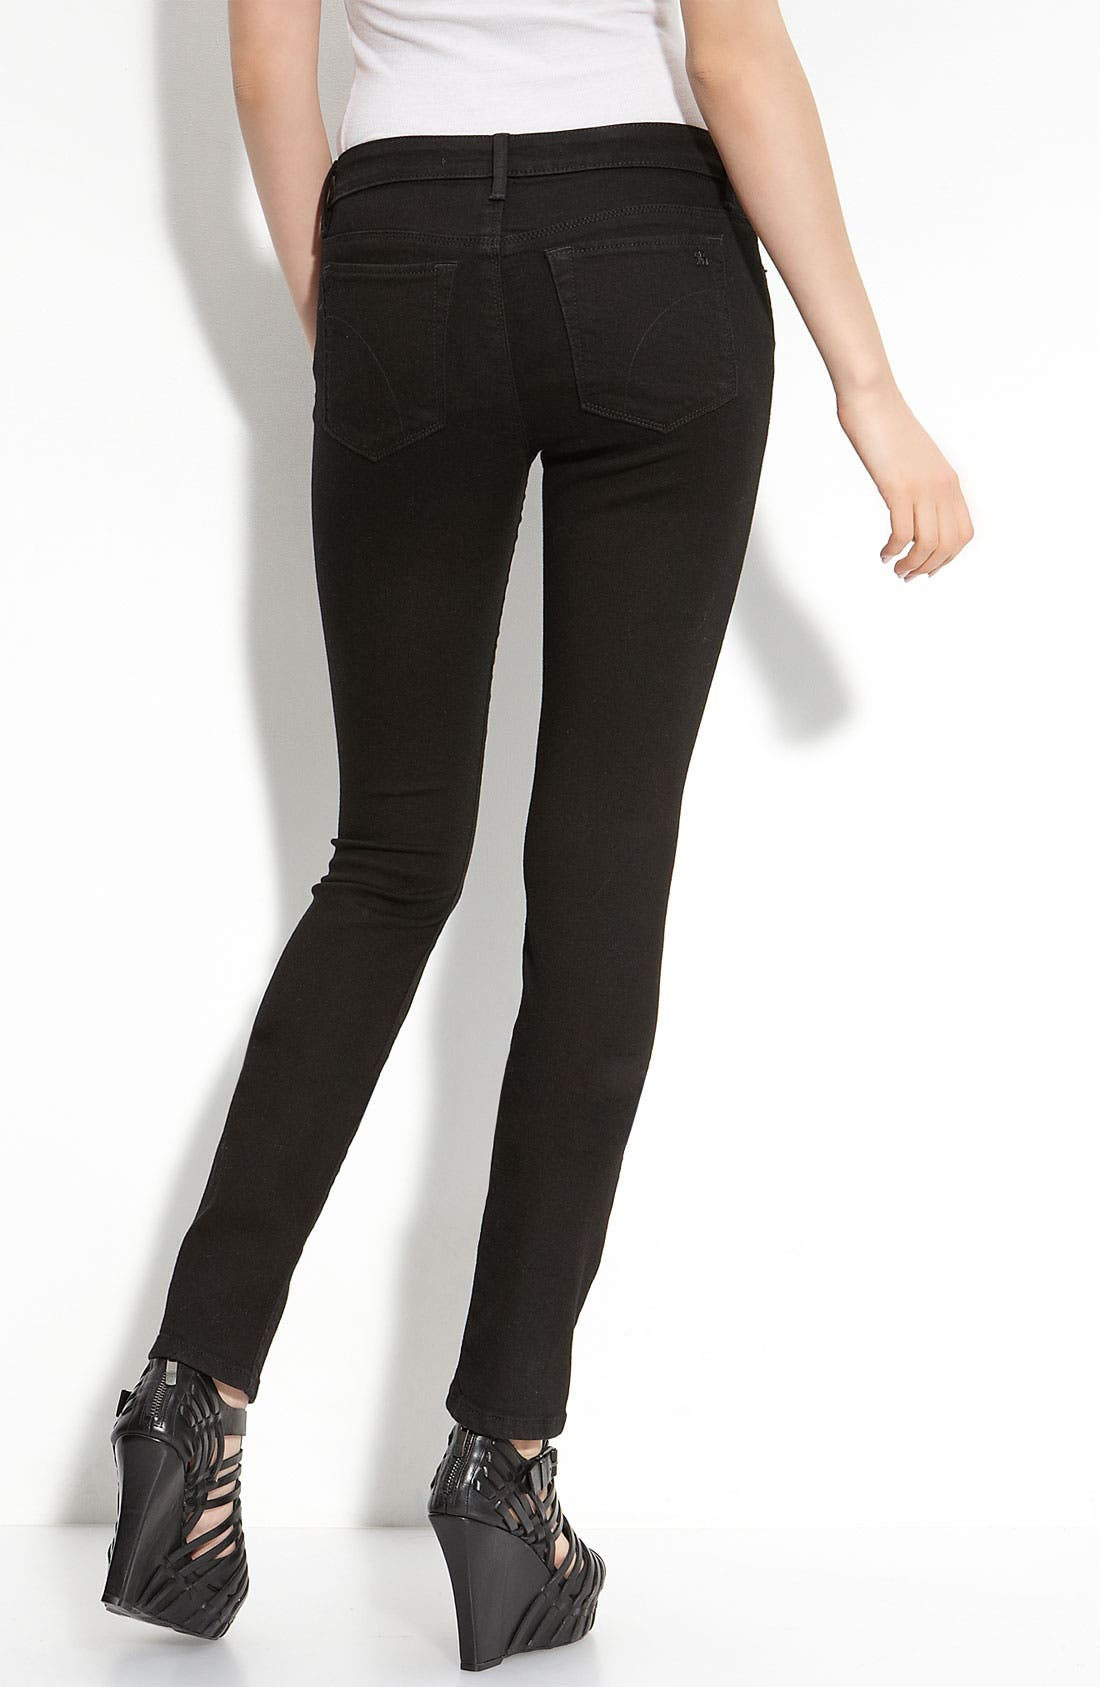 'Visionaire' Skinny Stretch Jeans,                             Alternate thumbnail 2, color,                             001